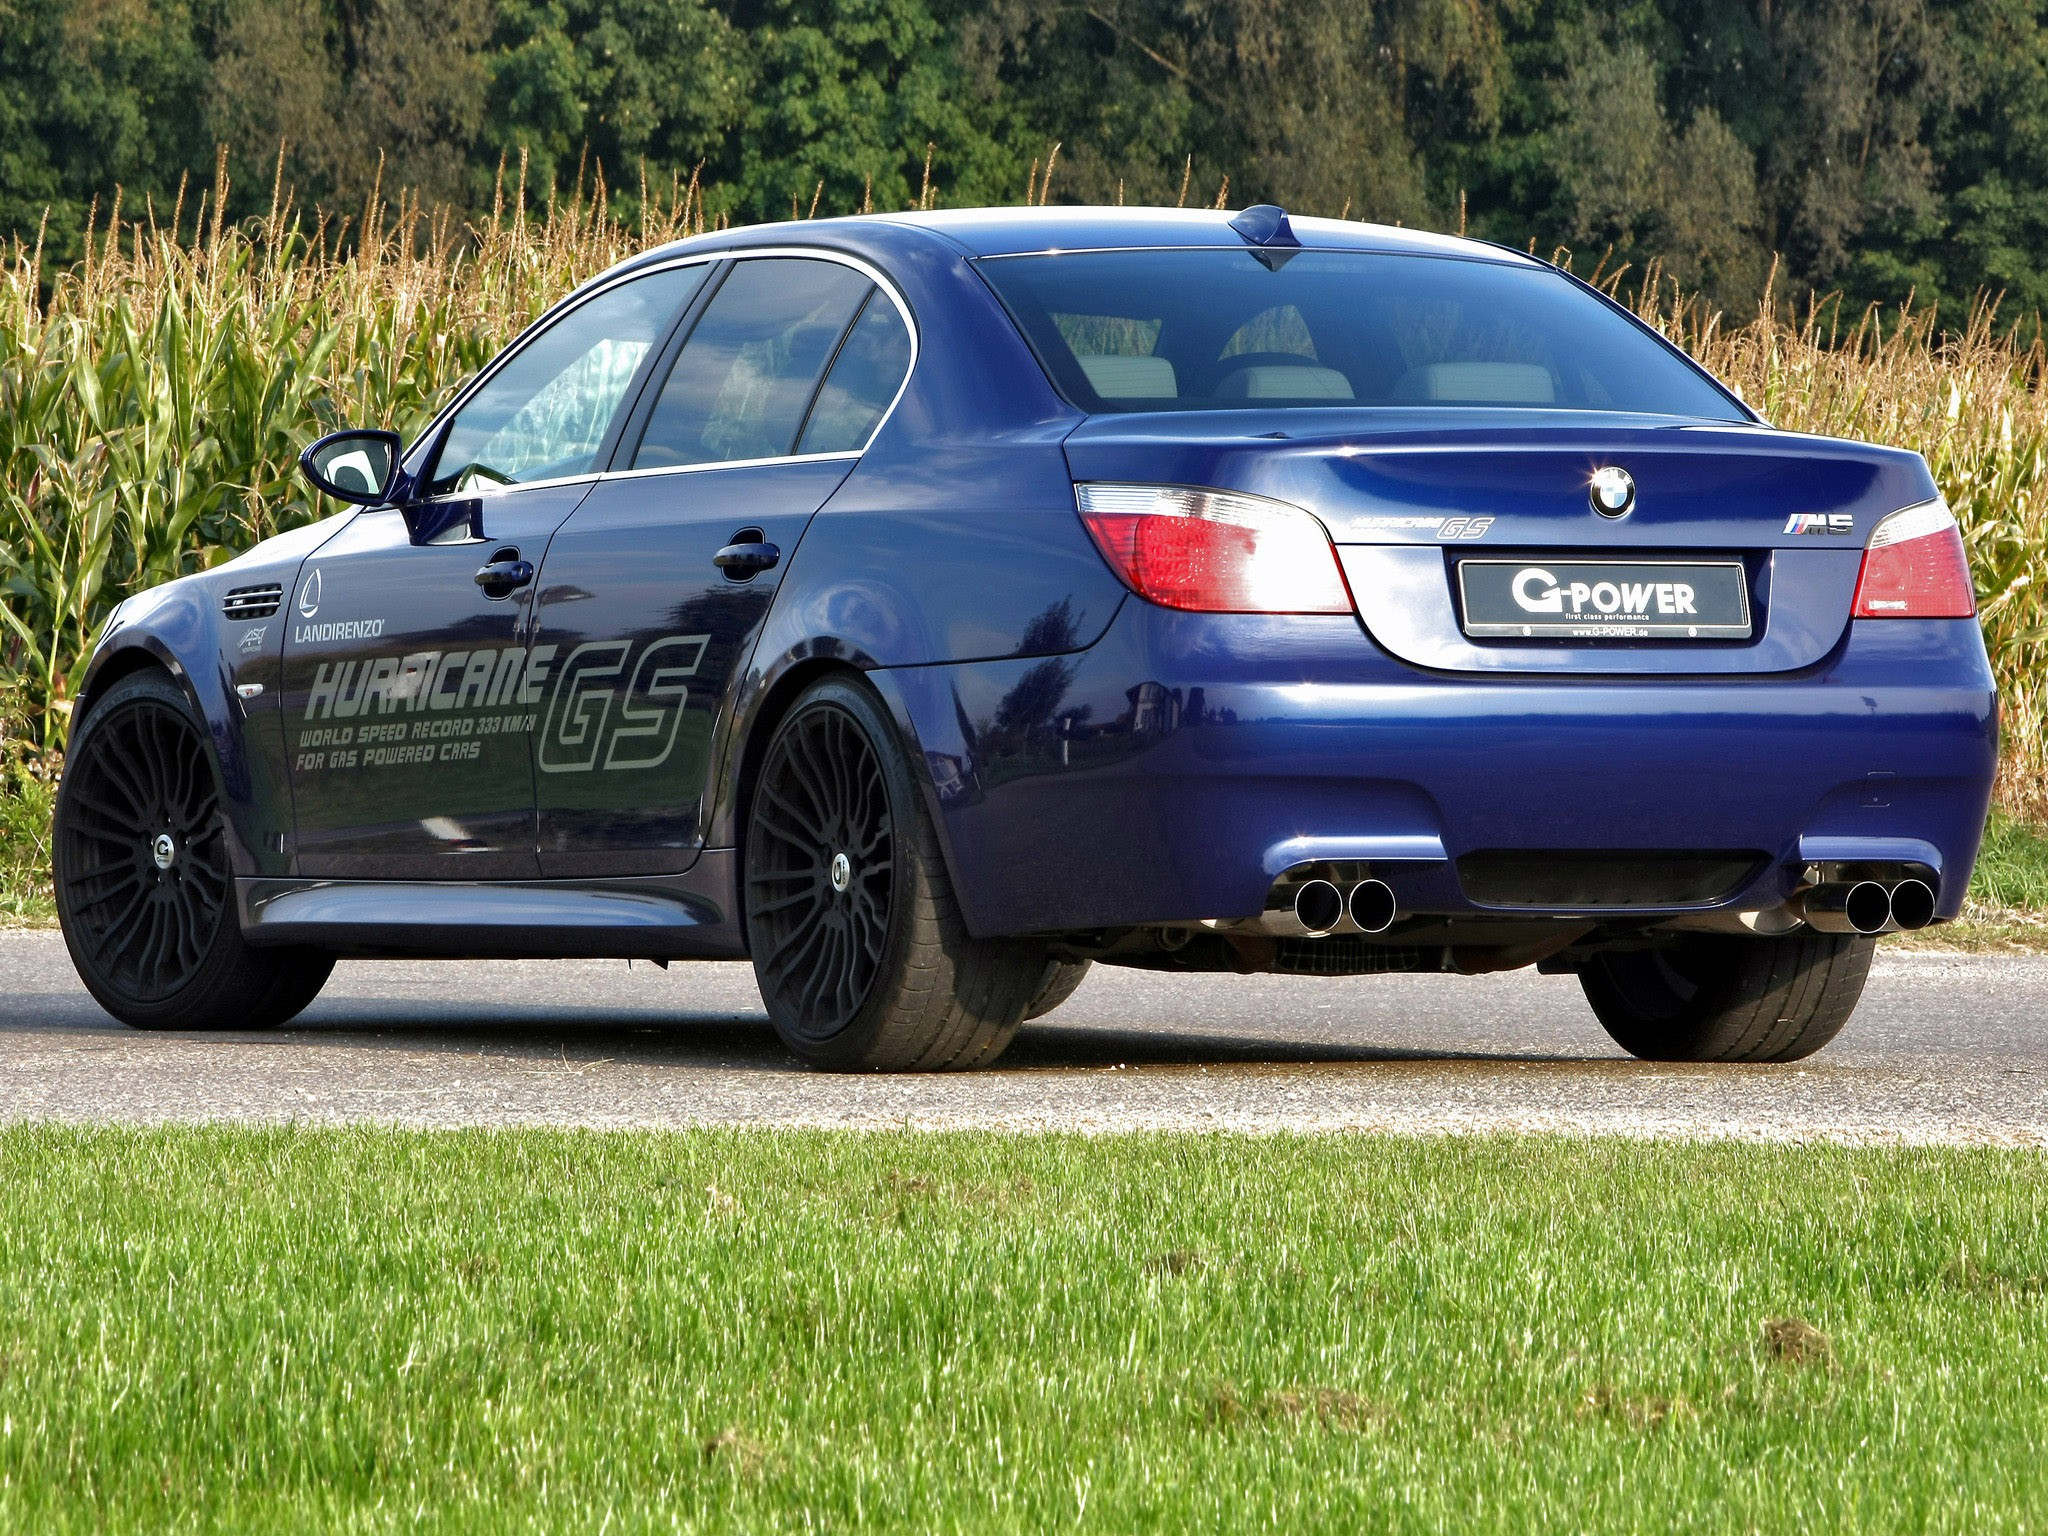 2010 G-power - Bmw M5 Hurricane GS E60